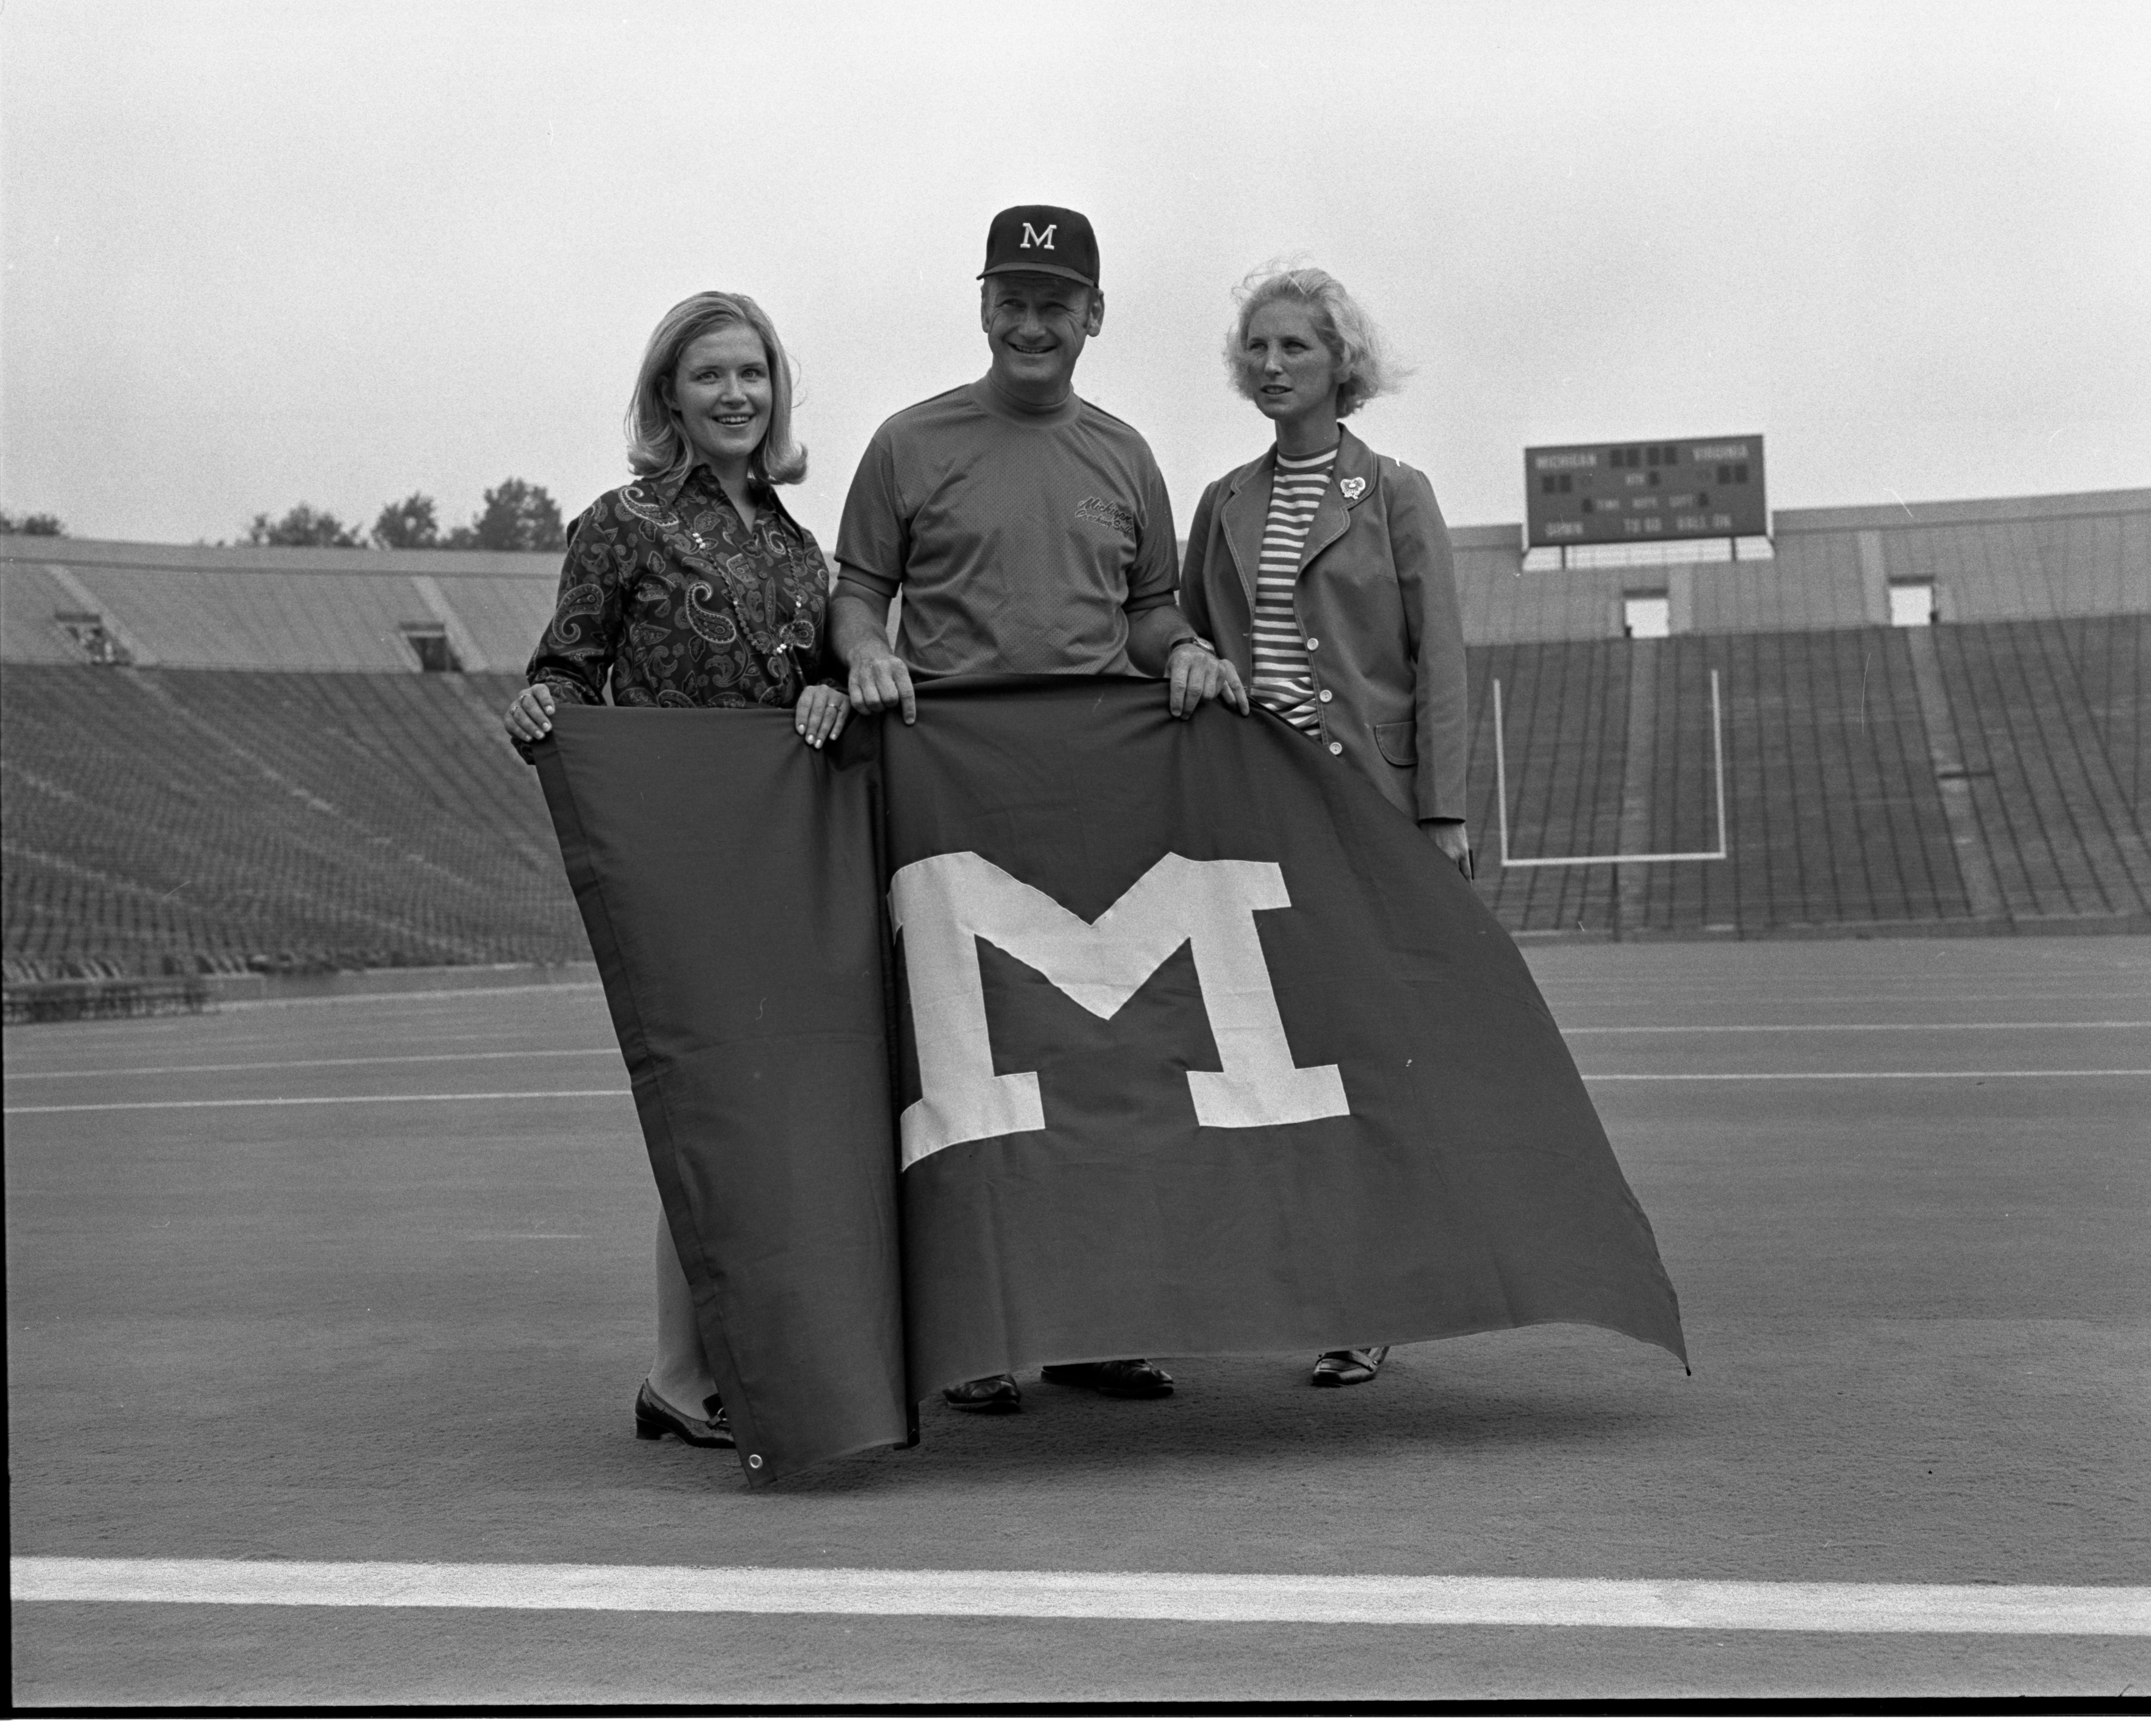 Bo Schembechler With 'M' Flags That Will Be Sold To Raise Funds for Scholarships, September 1971 image